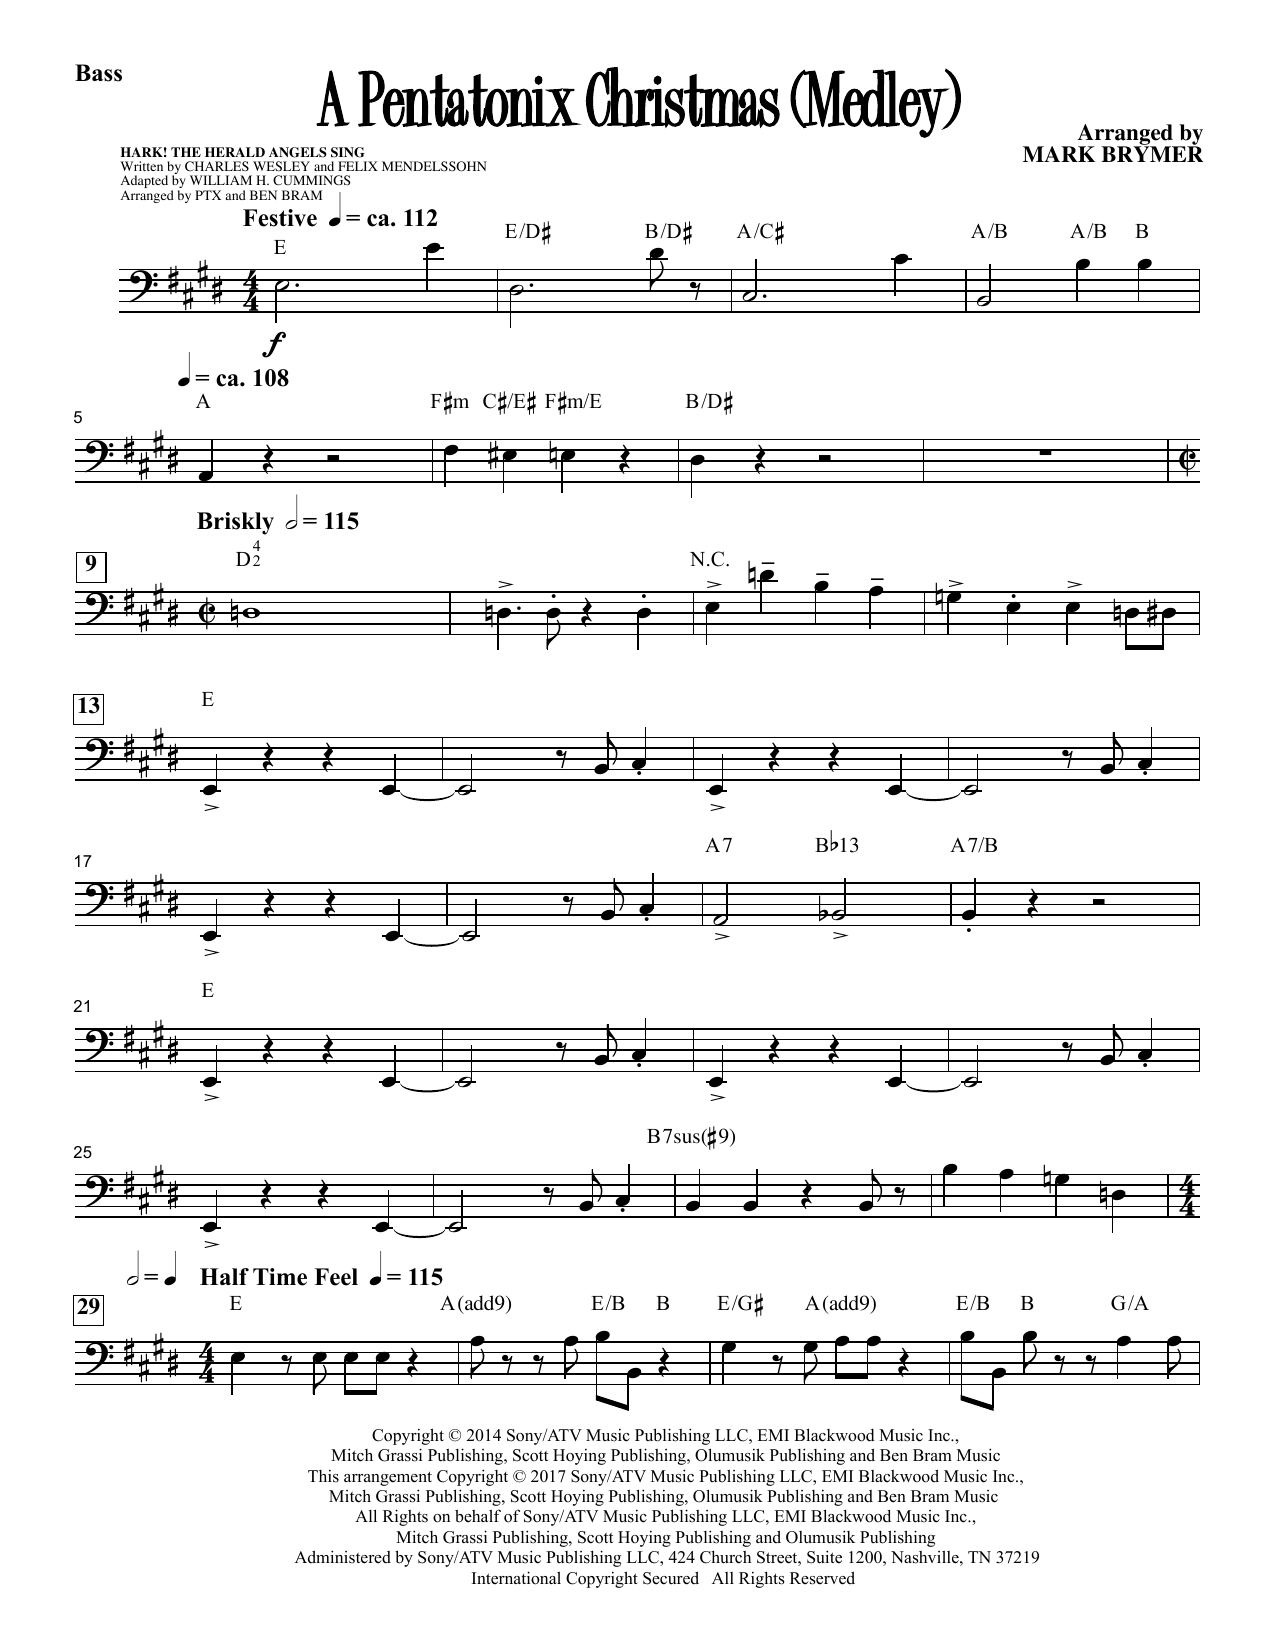 A Pentatonix Christmas (Medley) (arr. Mark Brymer) - Bass Sheet Music